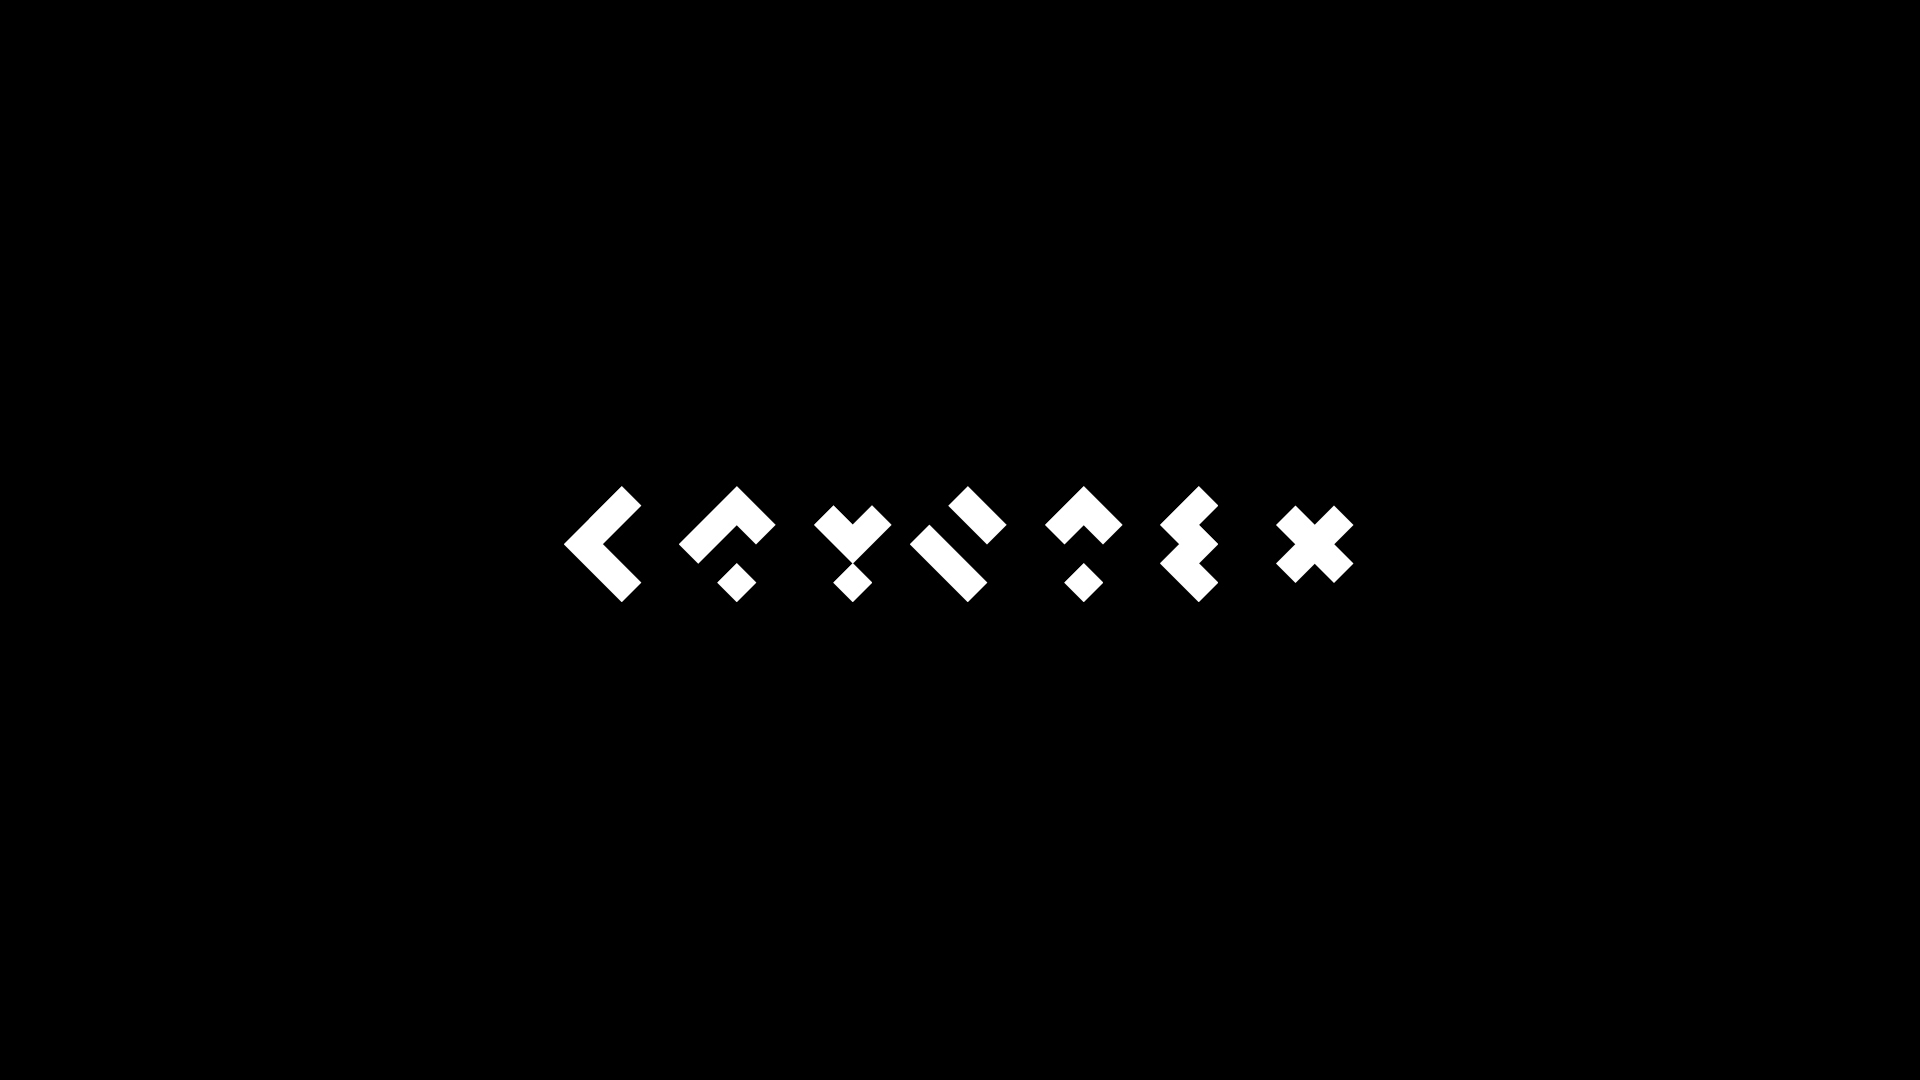 Cryptex Free Typeface - decorative-display